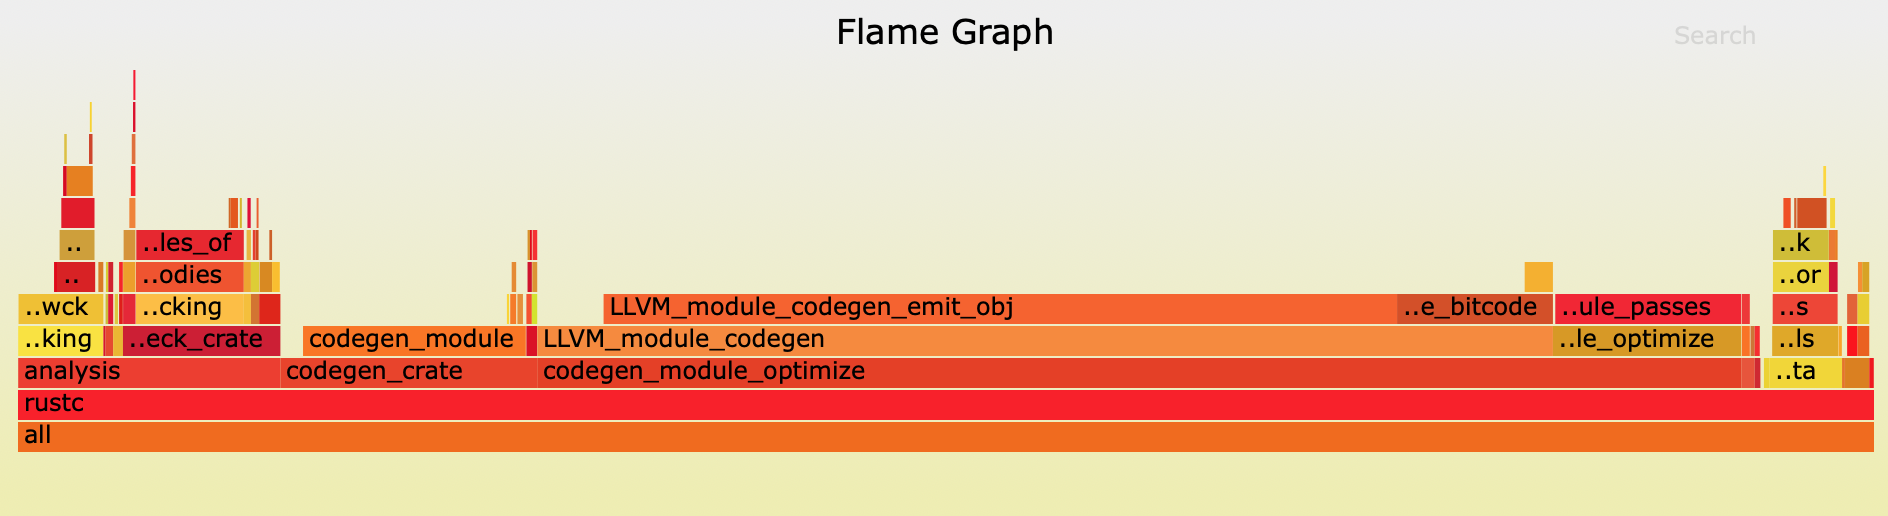 Image of flamegraph output